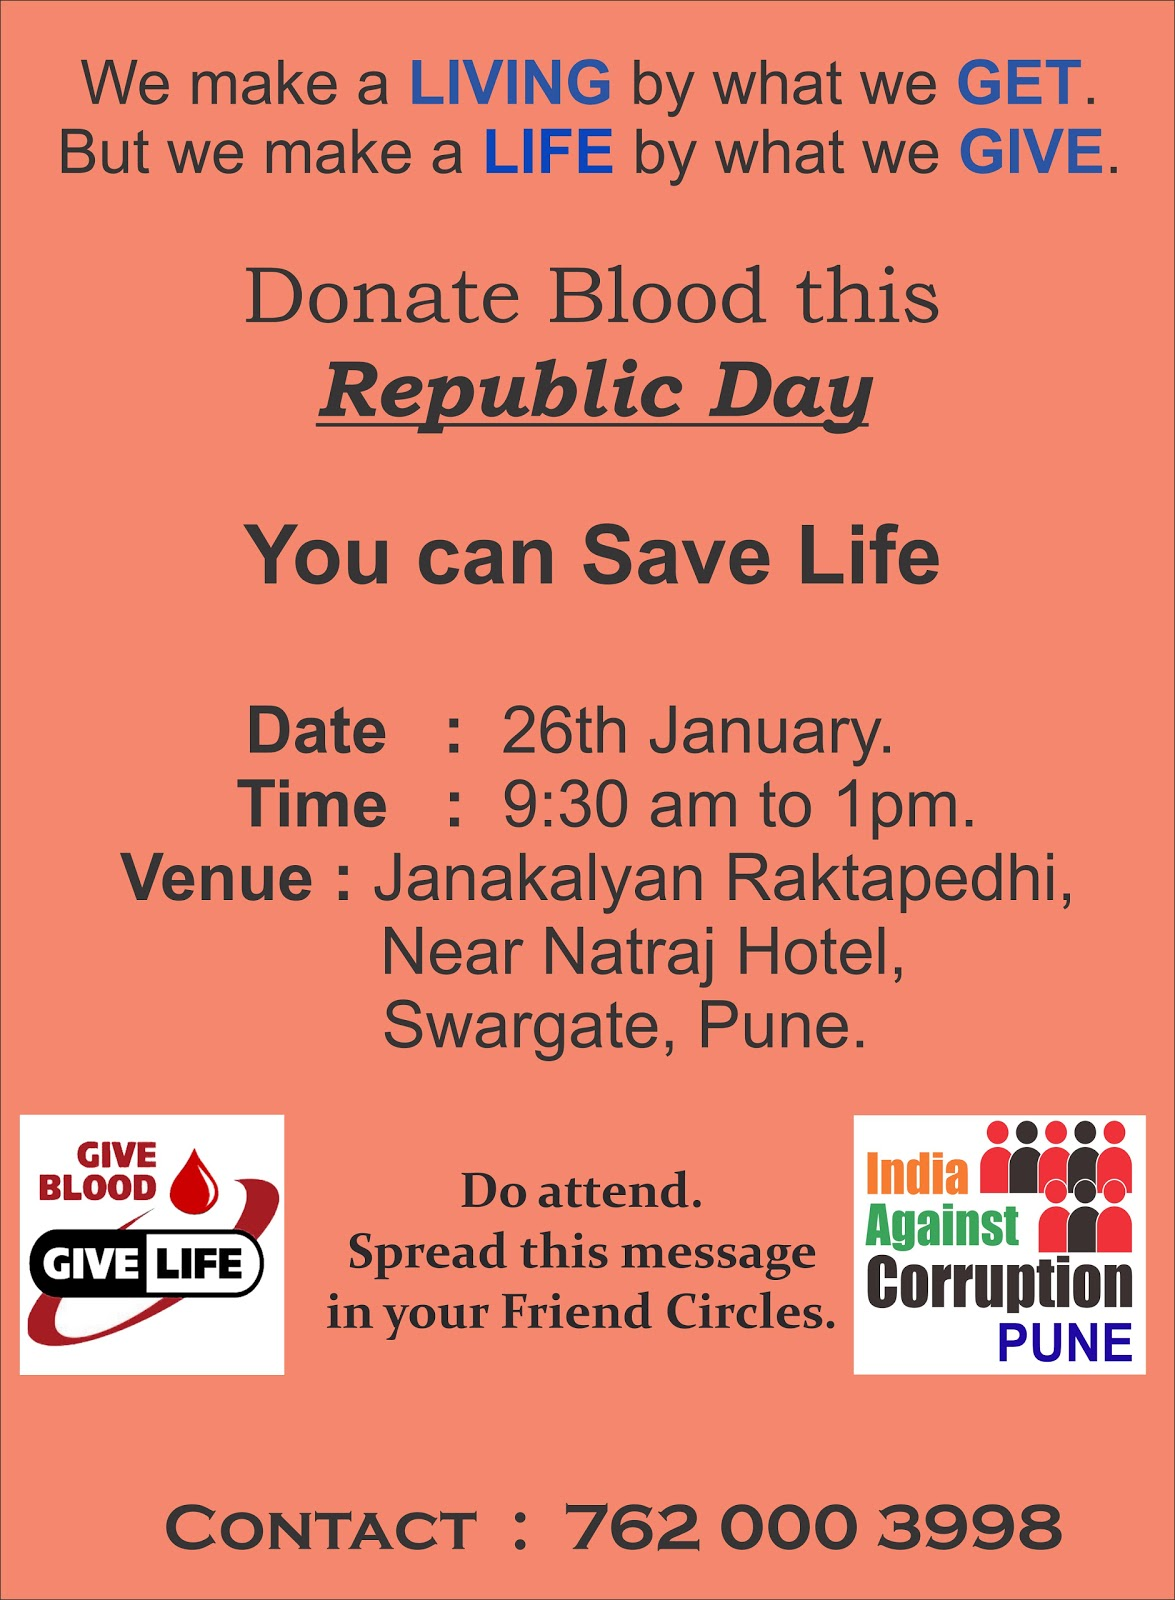 essay on blood donation camp clever essay titles how to write good essay titles that are good how to write good · jincey shraddha richa blood donation camp